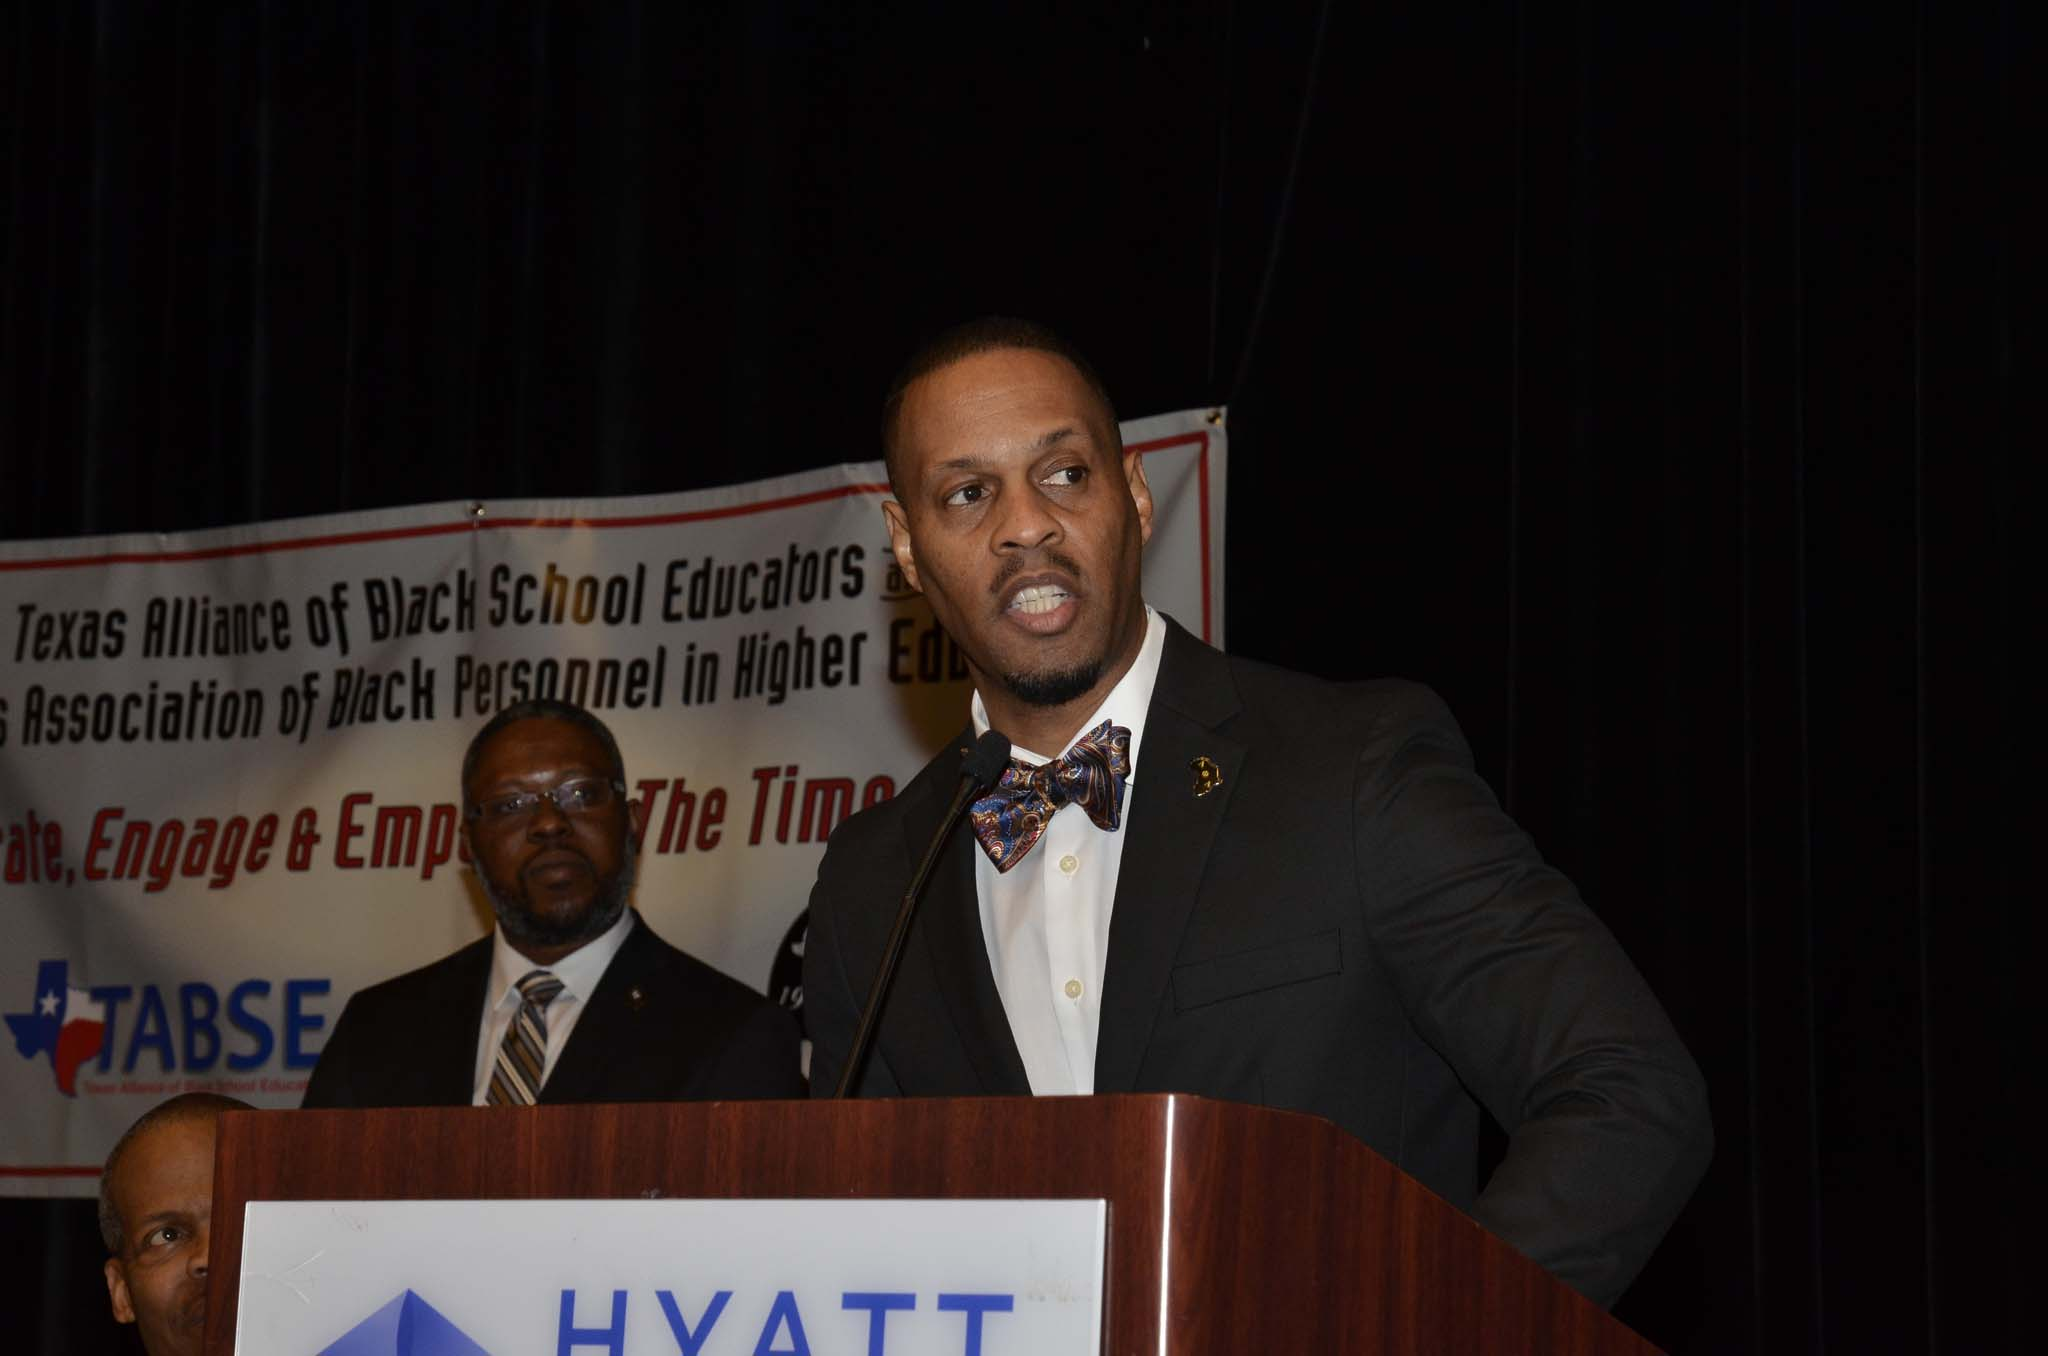 TABSE 33rd State Conference - General Assemblies